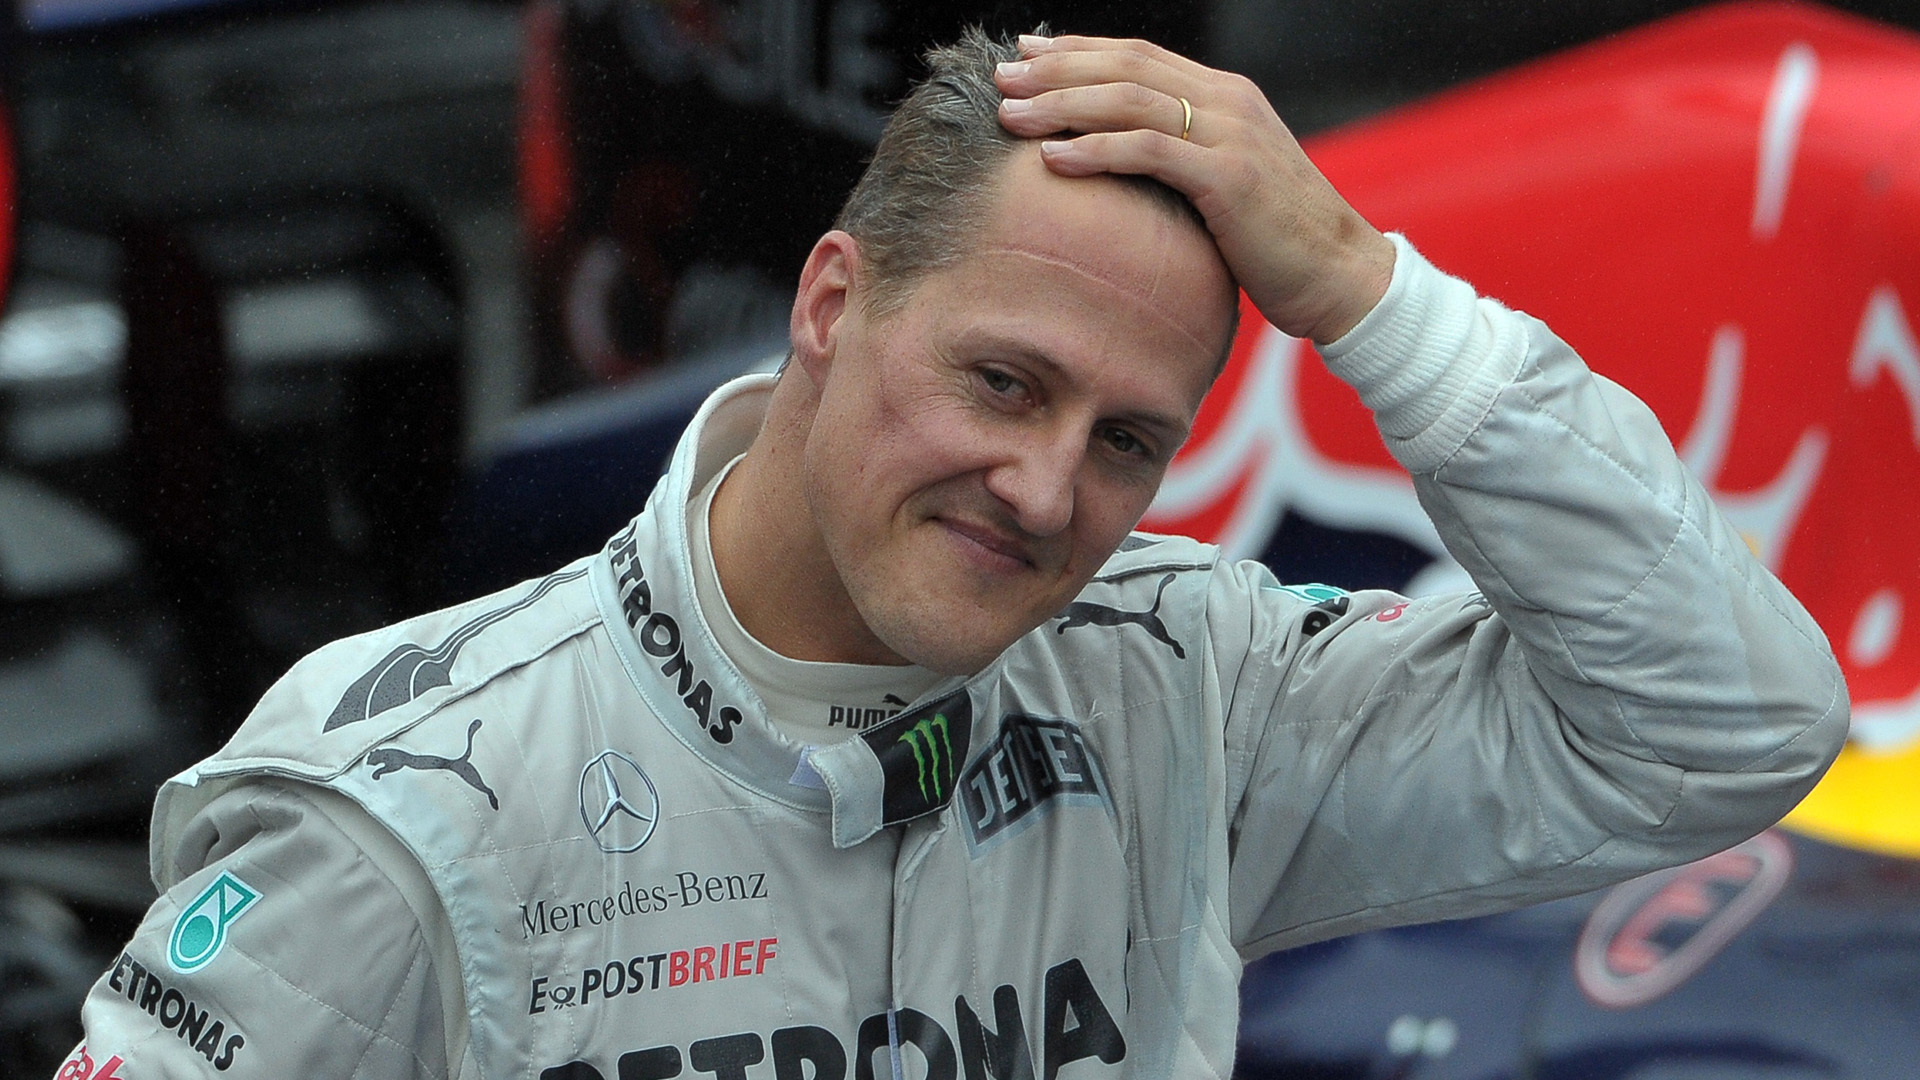 Michael Schumacher Full HD